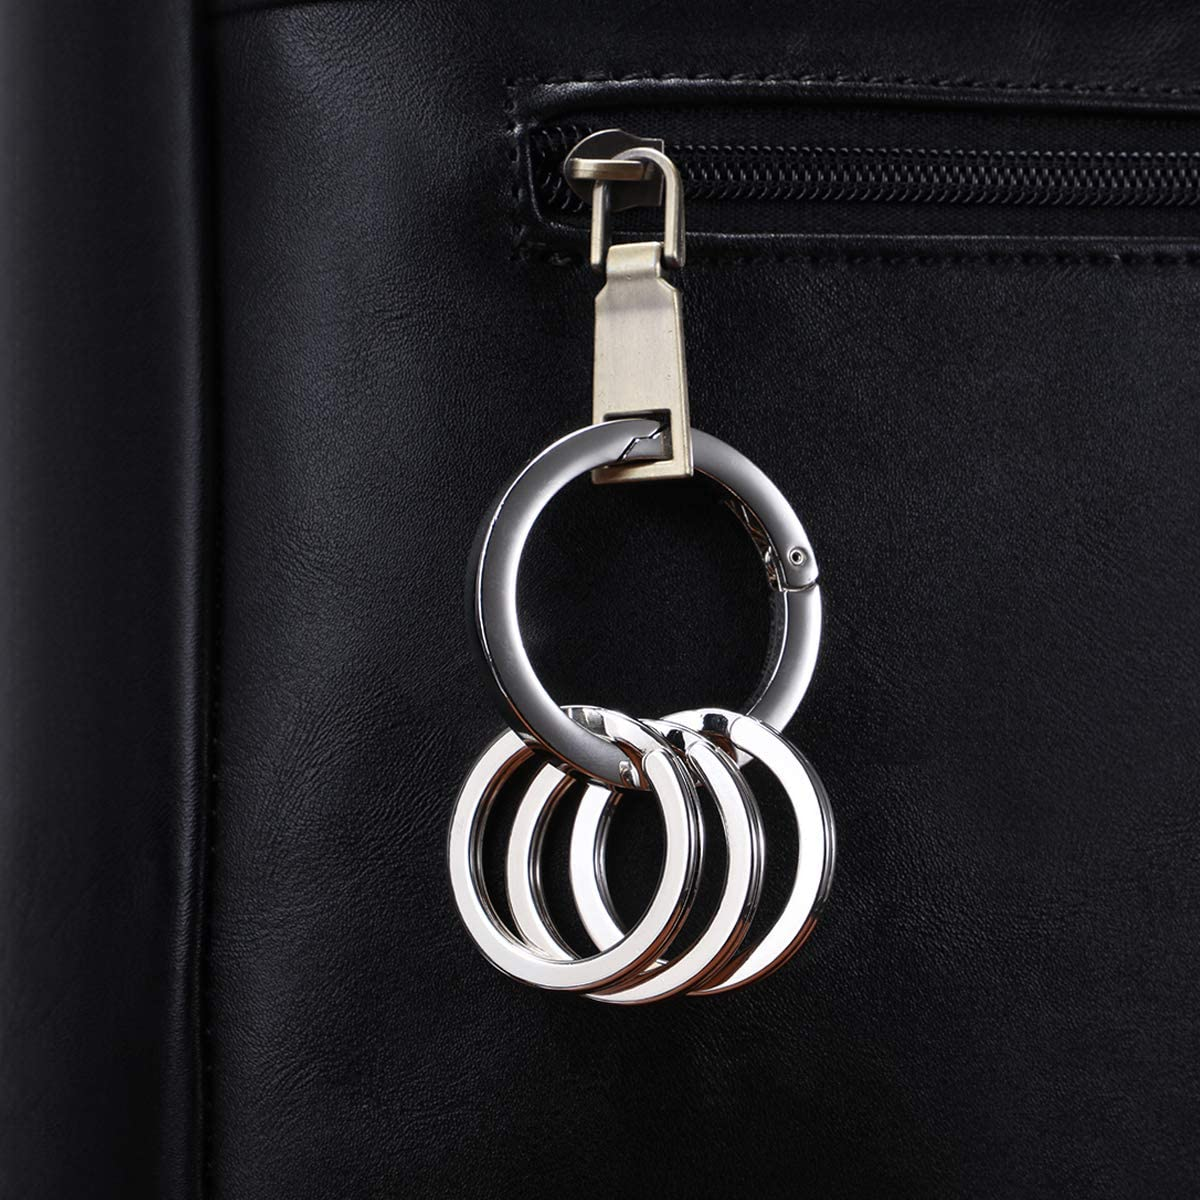 Solid Metal Keychain Clip Universal Size Key Organizer Key Clip Pure Round Circle Design SGODDE Fashion Carabiner Keychain with 3 Matching Key Rings Set Strong